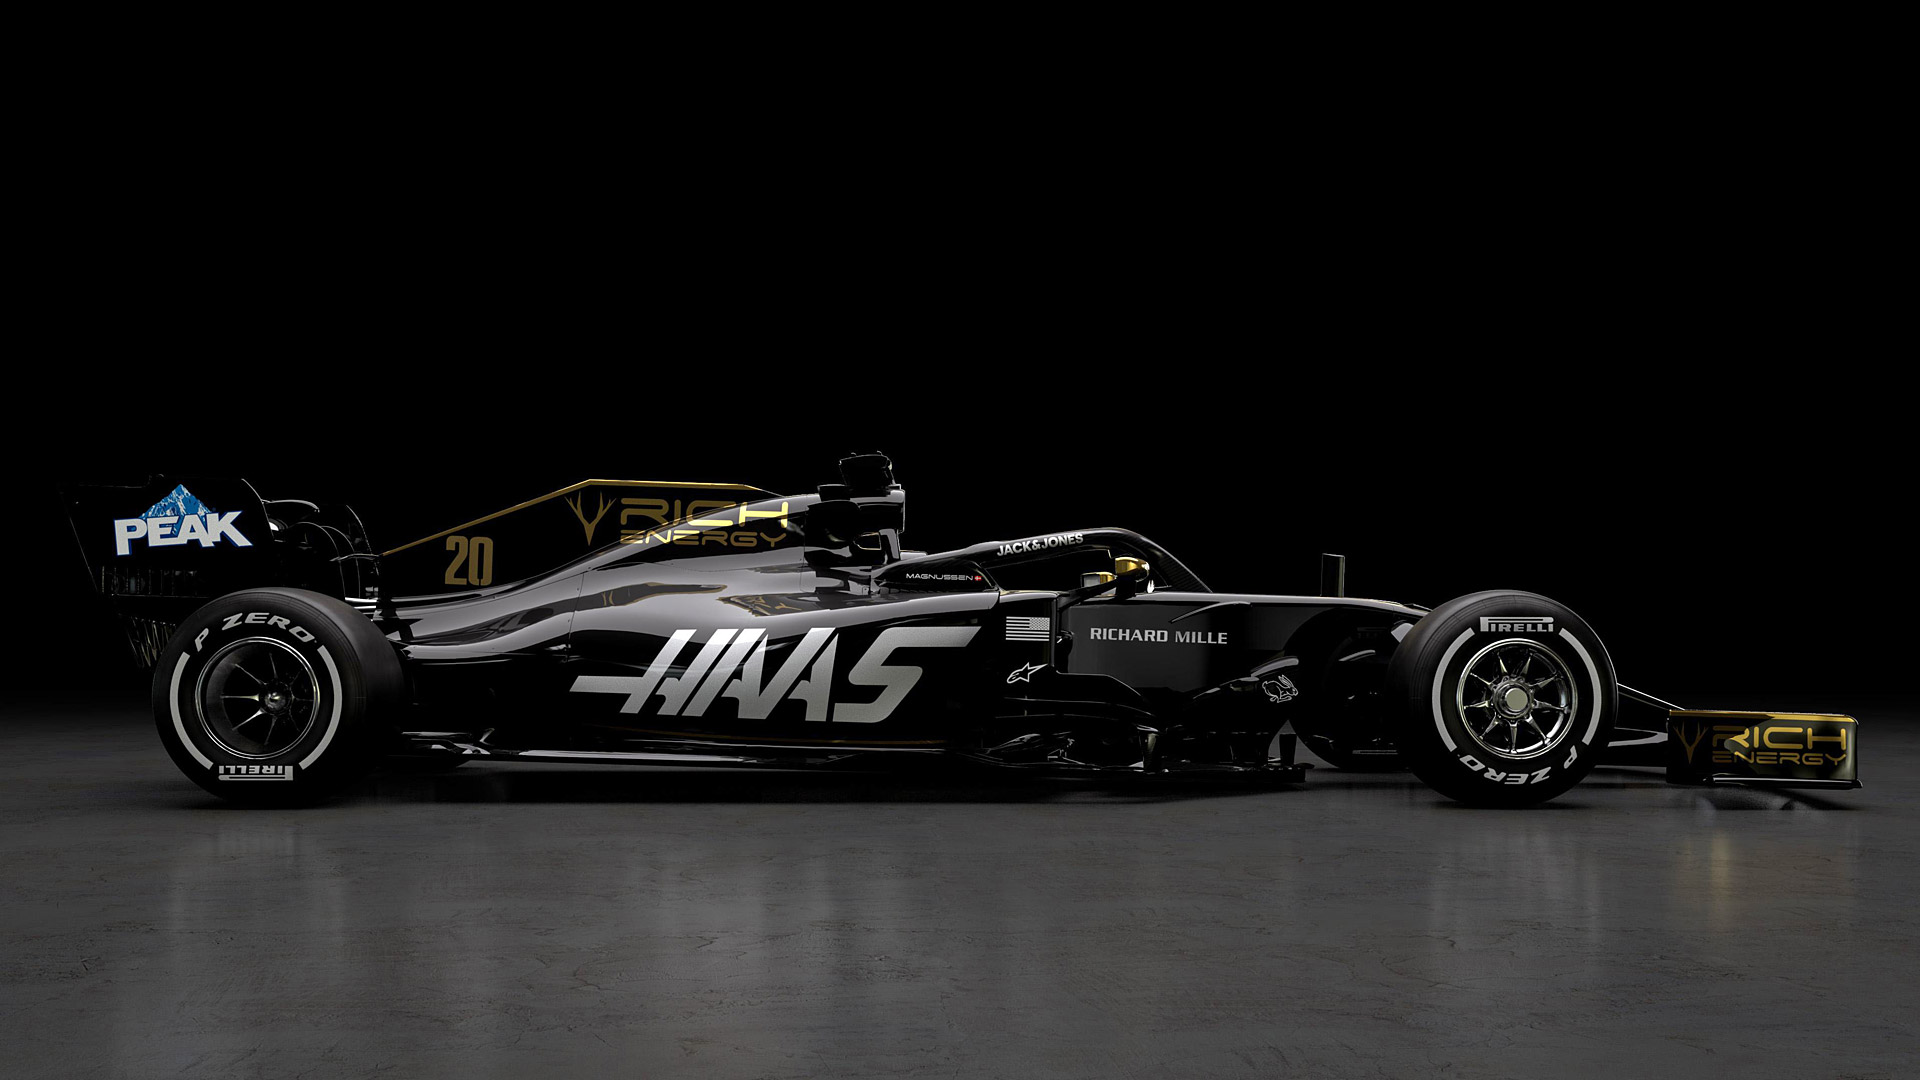 2019 Haas VF 19 Wallpapers HD Images   WSupercars 1920x1080